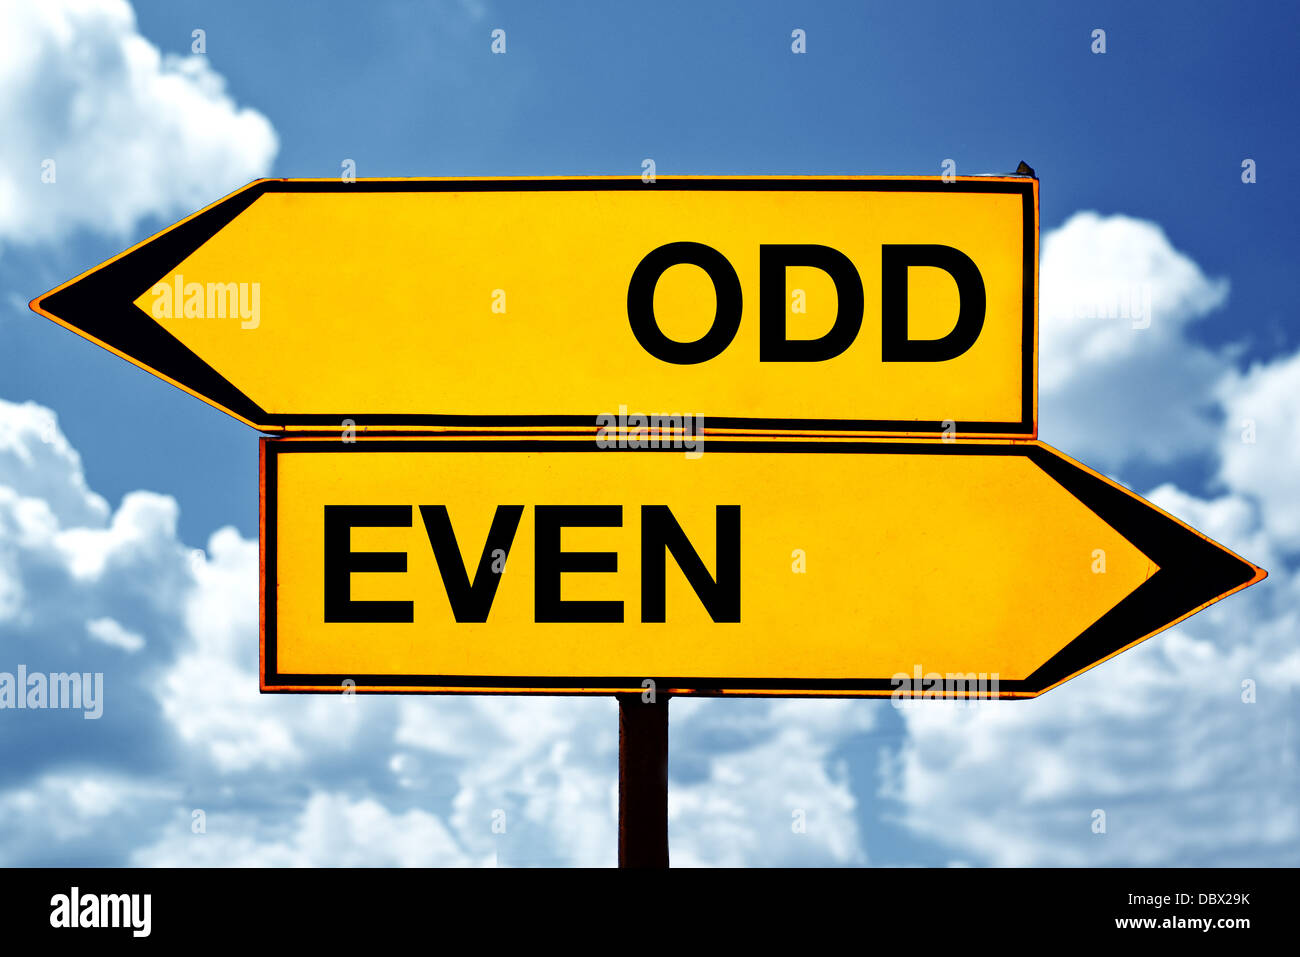 Odd or even, opposite signs. Two opposite signs against blue sky background. - Stock Image